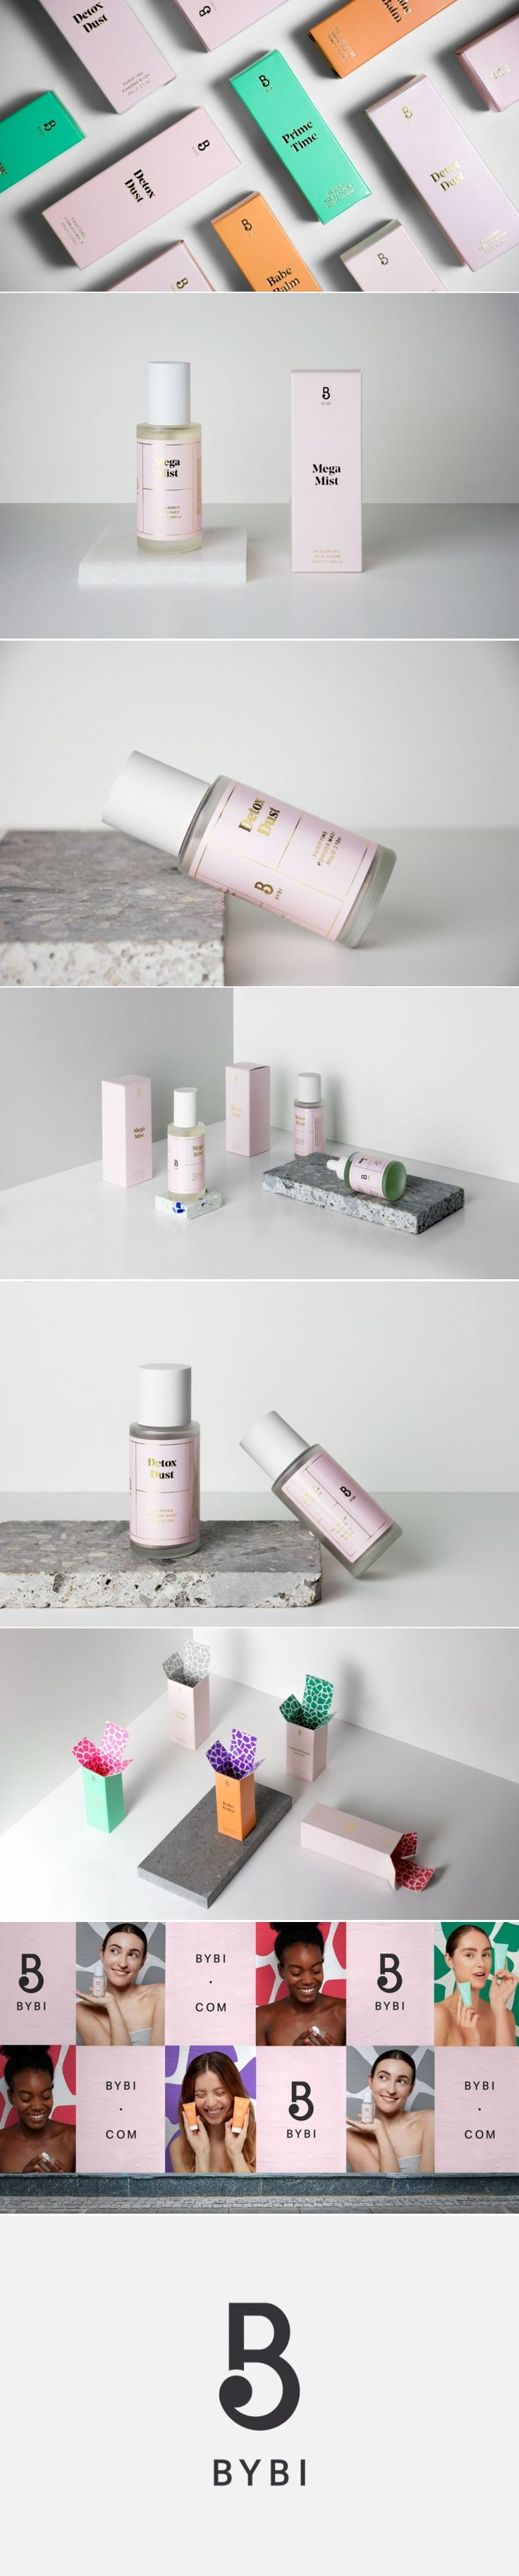 BYBI Skincare's Packaging Stands Out With Its Atypical Use of Color — The Dieline | Packaging & Branding Design & Innovation News